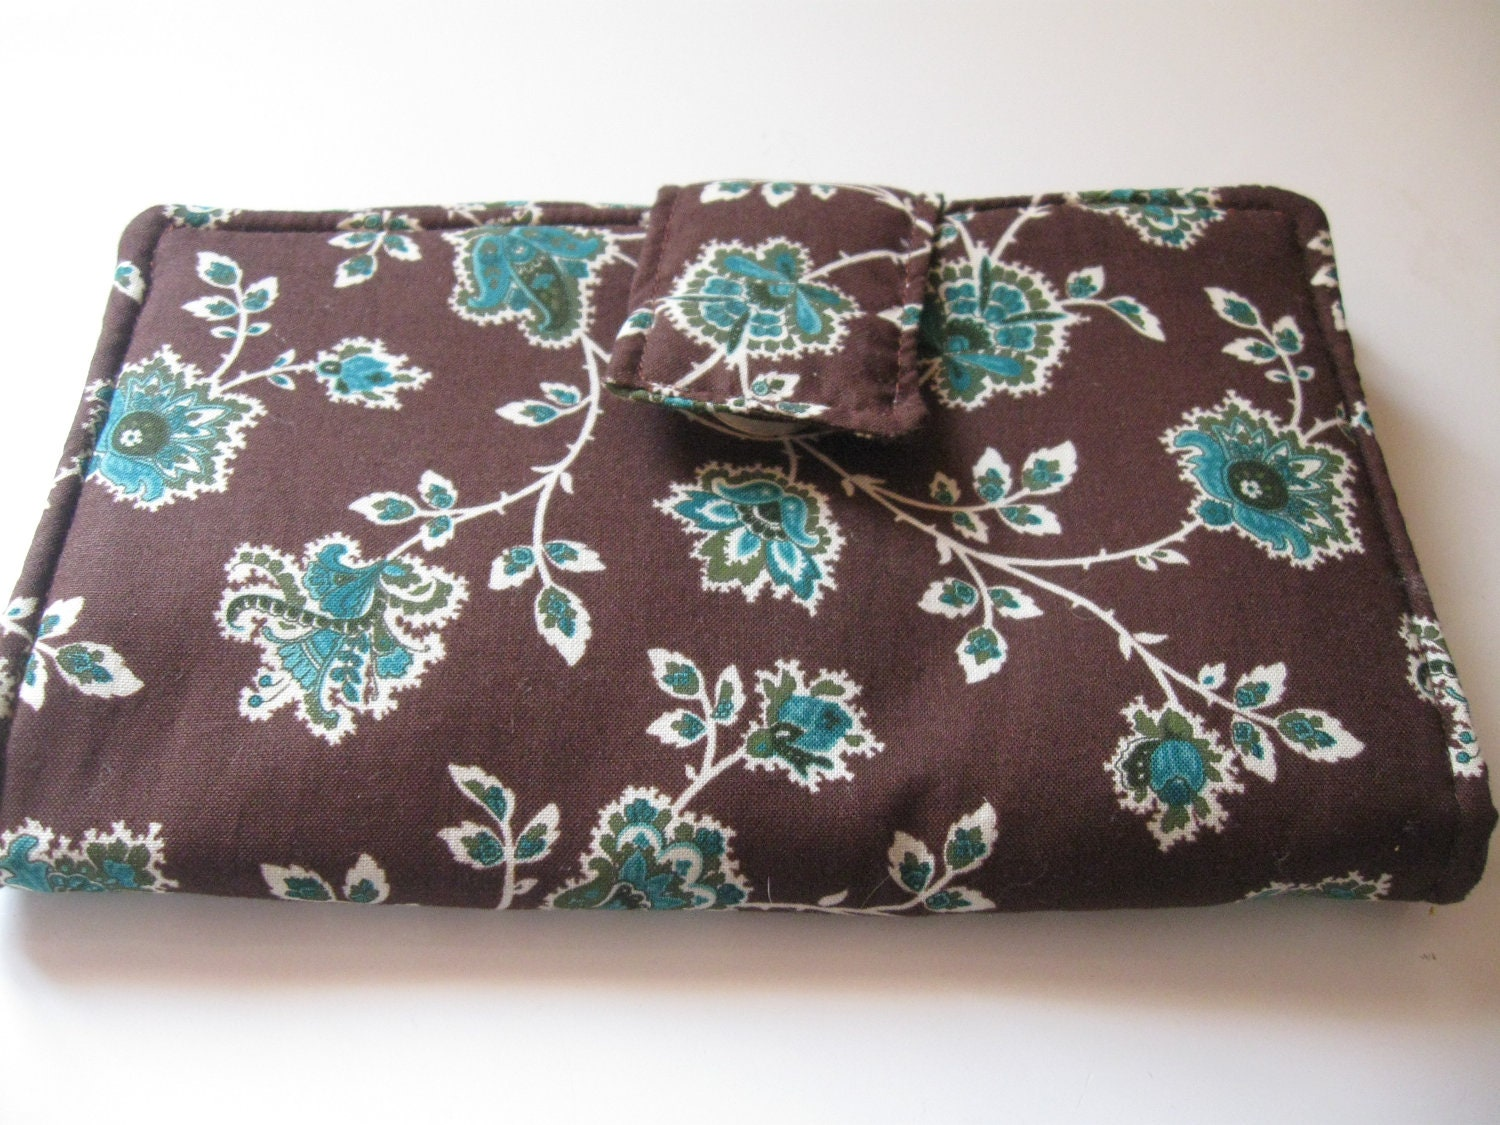 Brown Teel Print Large Wallet with eight card holders and two money sections made of cotton fabric